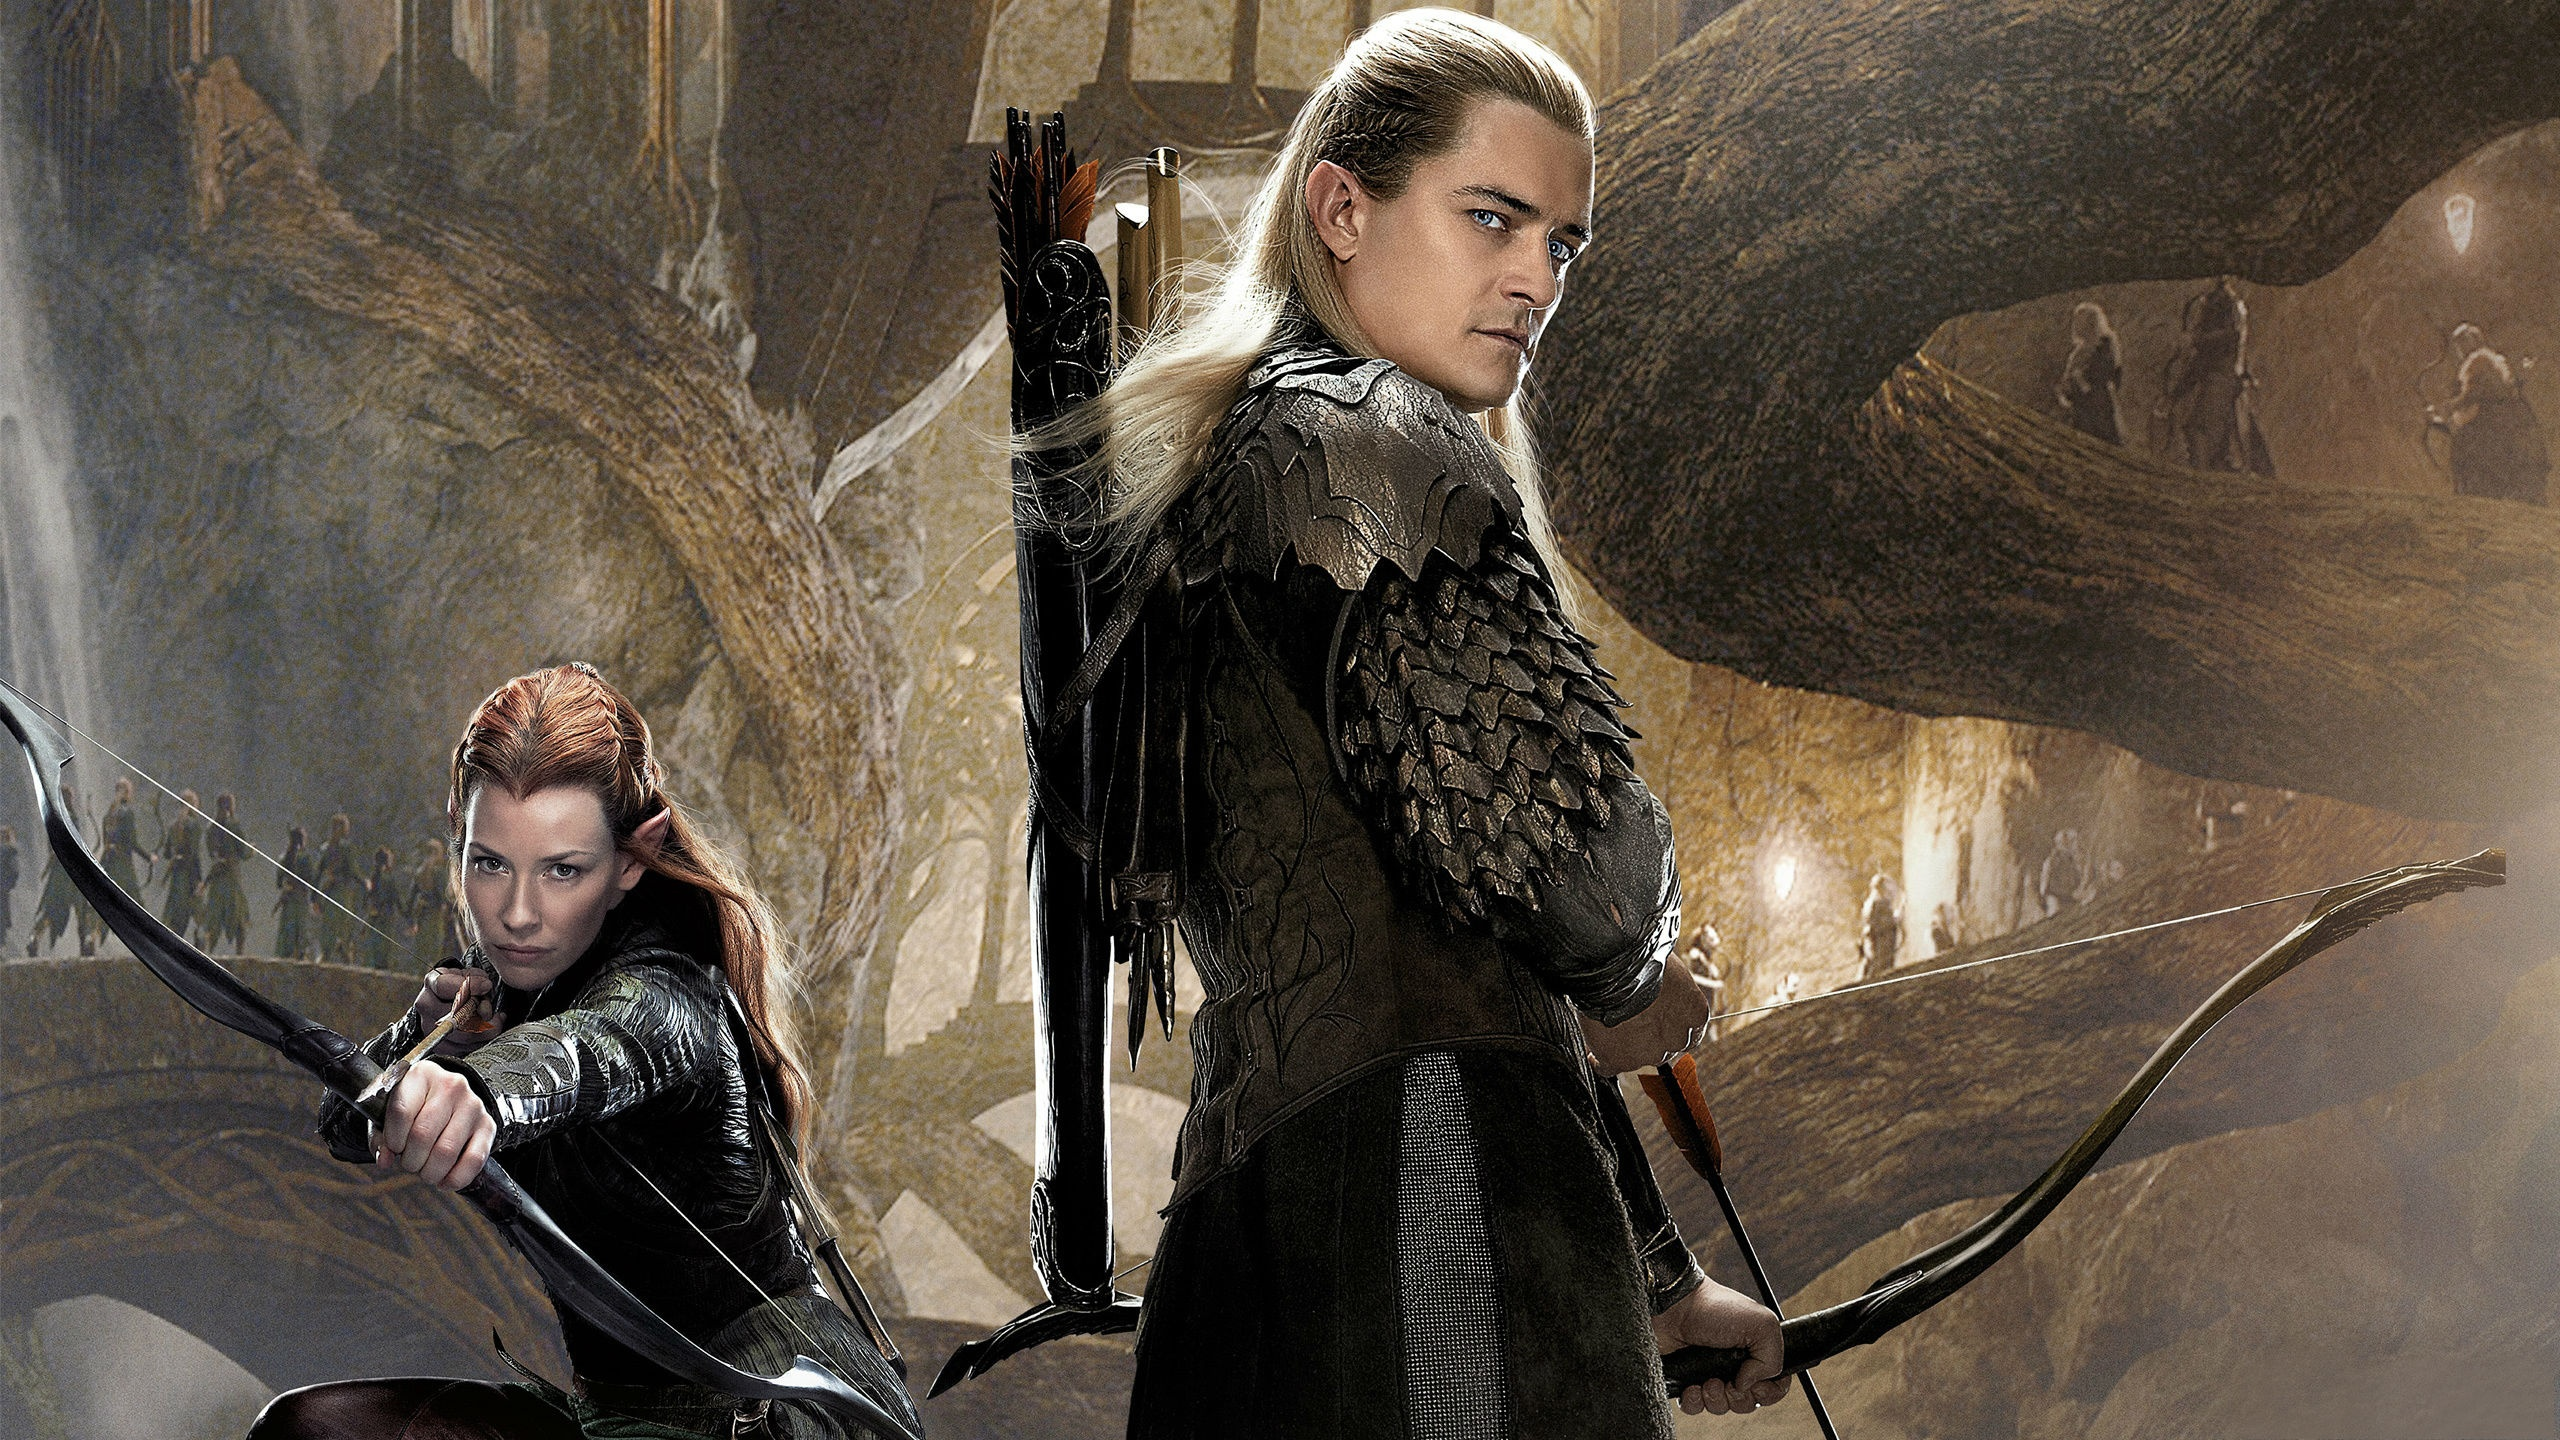 Lord of the Rings The Hobbit Orlando Bloom Legolas Evangeline Lilly 2560x1440